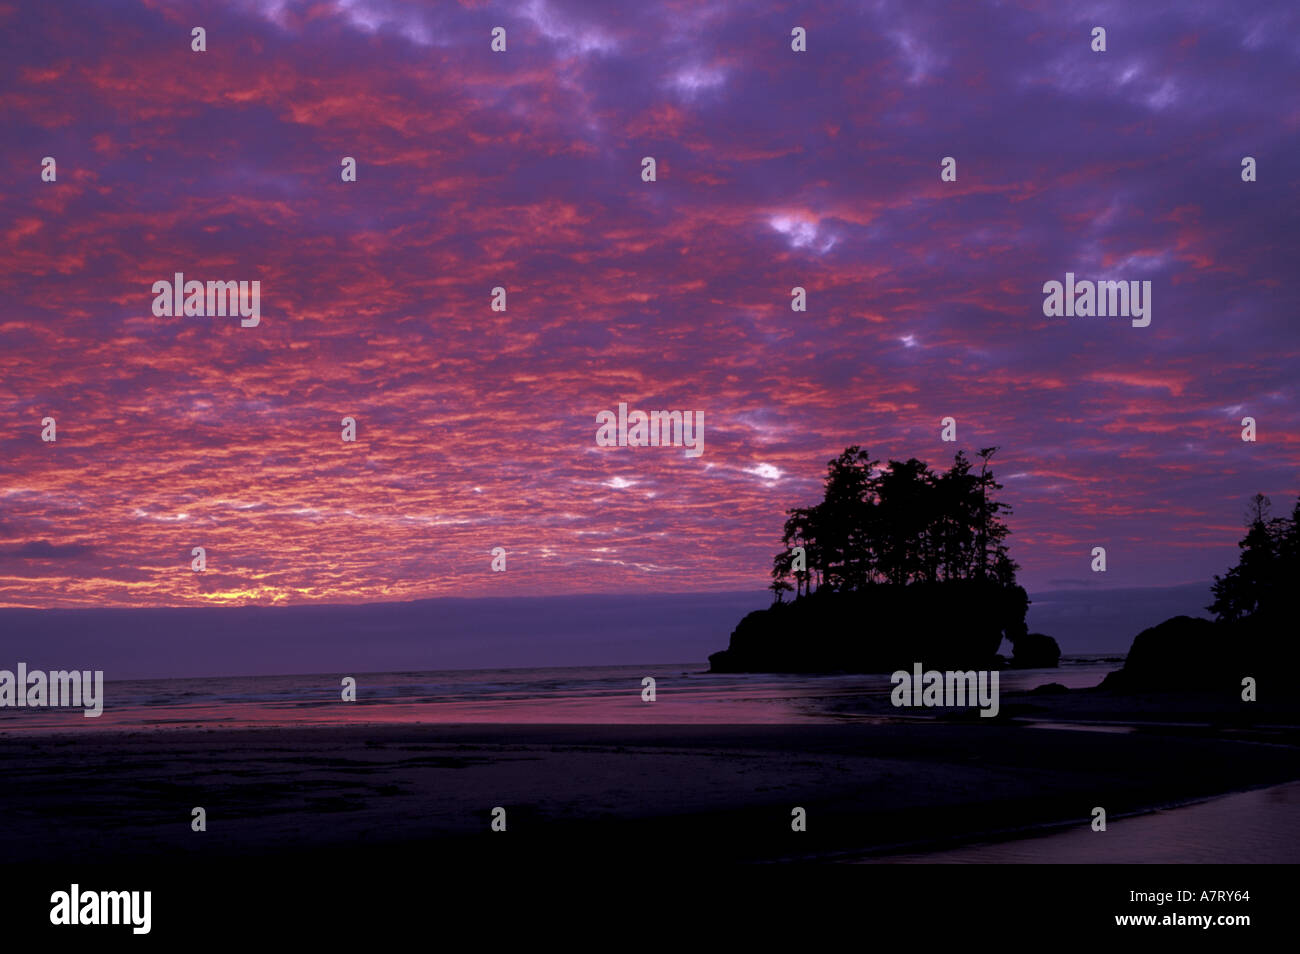 N.A., USA, Washington, Sunset at Tounge Point near Salt Creek Recreational Area - Stock Image